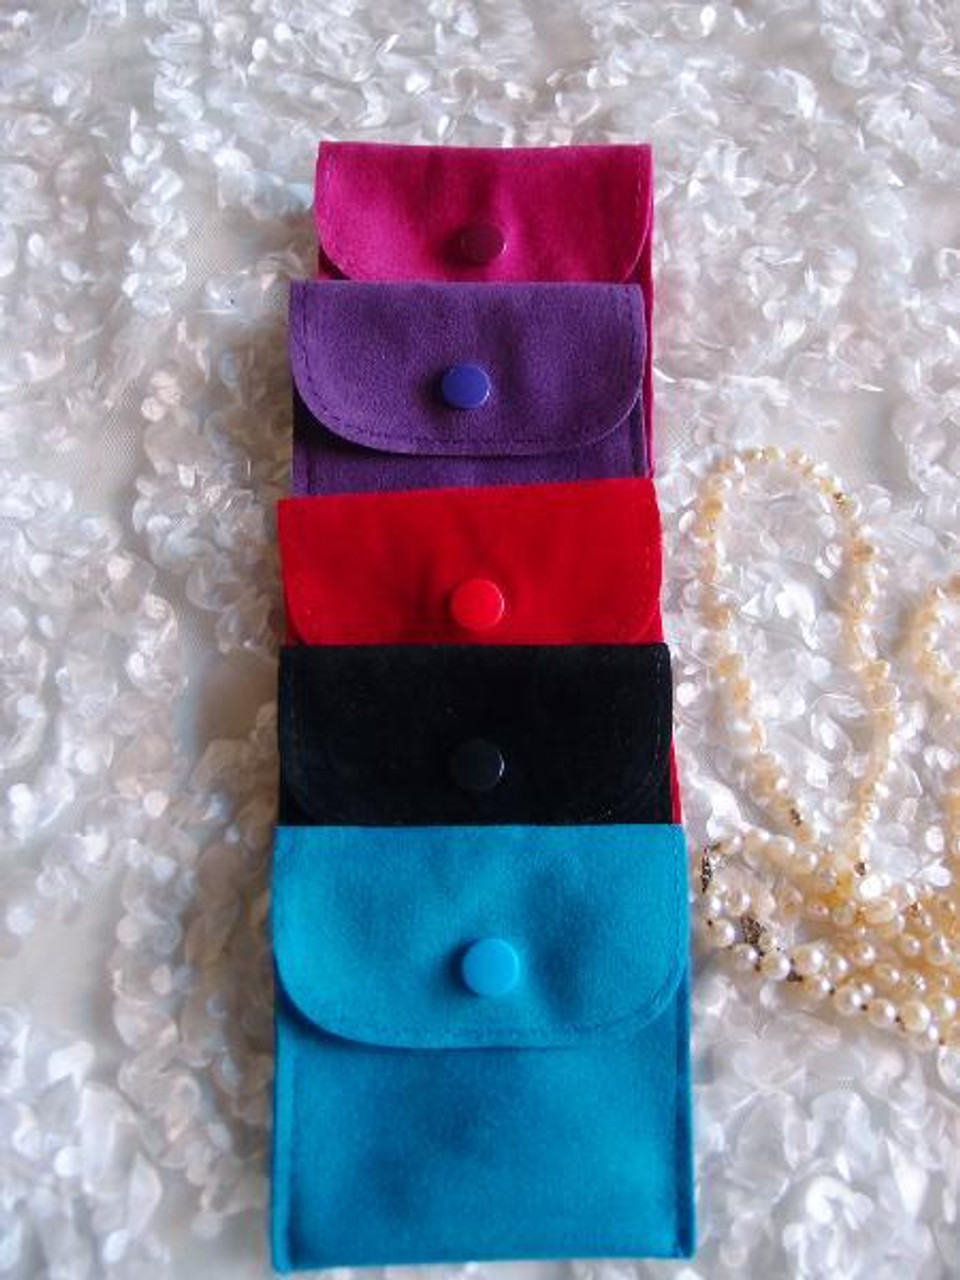 3 x 3 inches Black Velvet Flapover Jewelry Pouch with Snap Fastener (J134-39), Wholesale Velvet Jewelry Bags | Packaging Decor, Gift Packaging